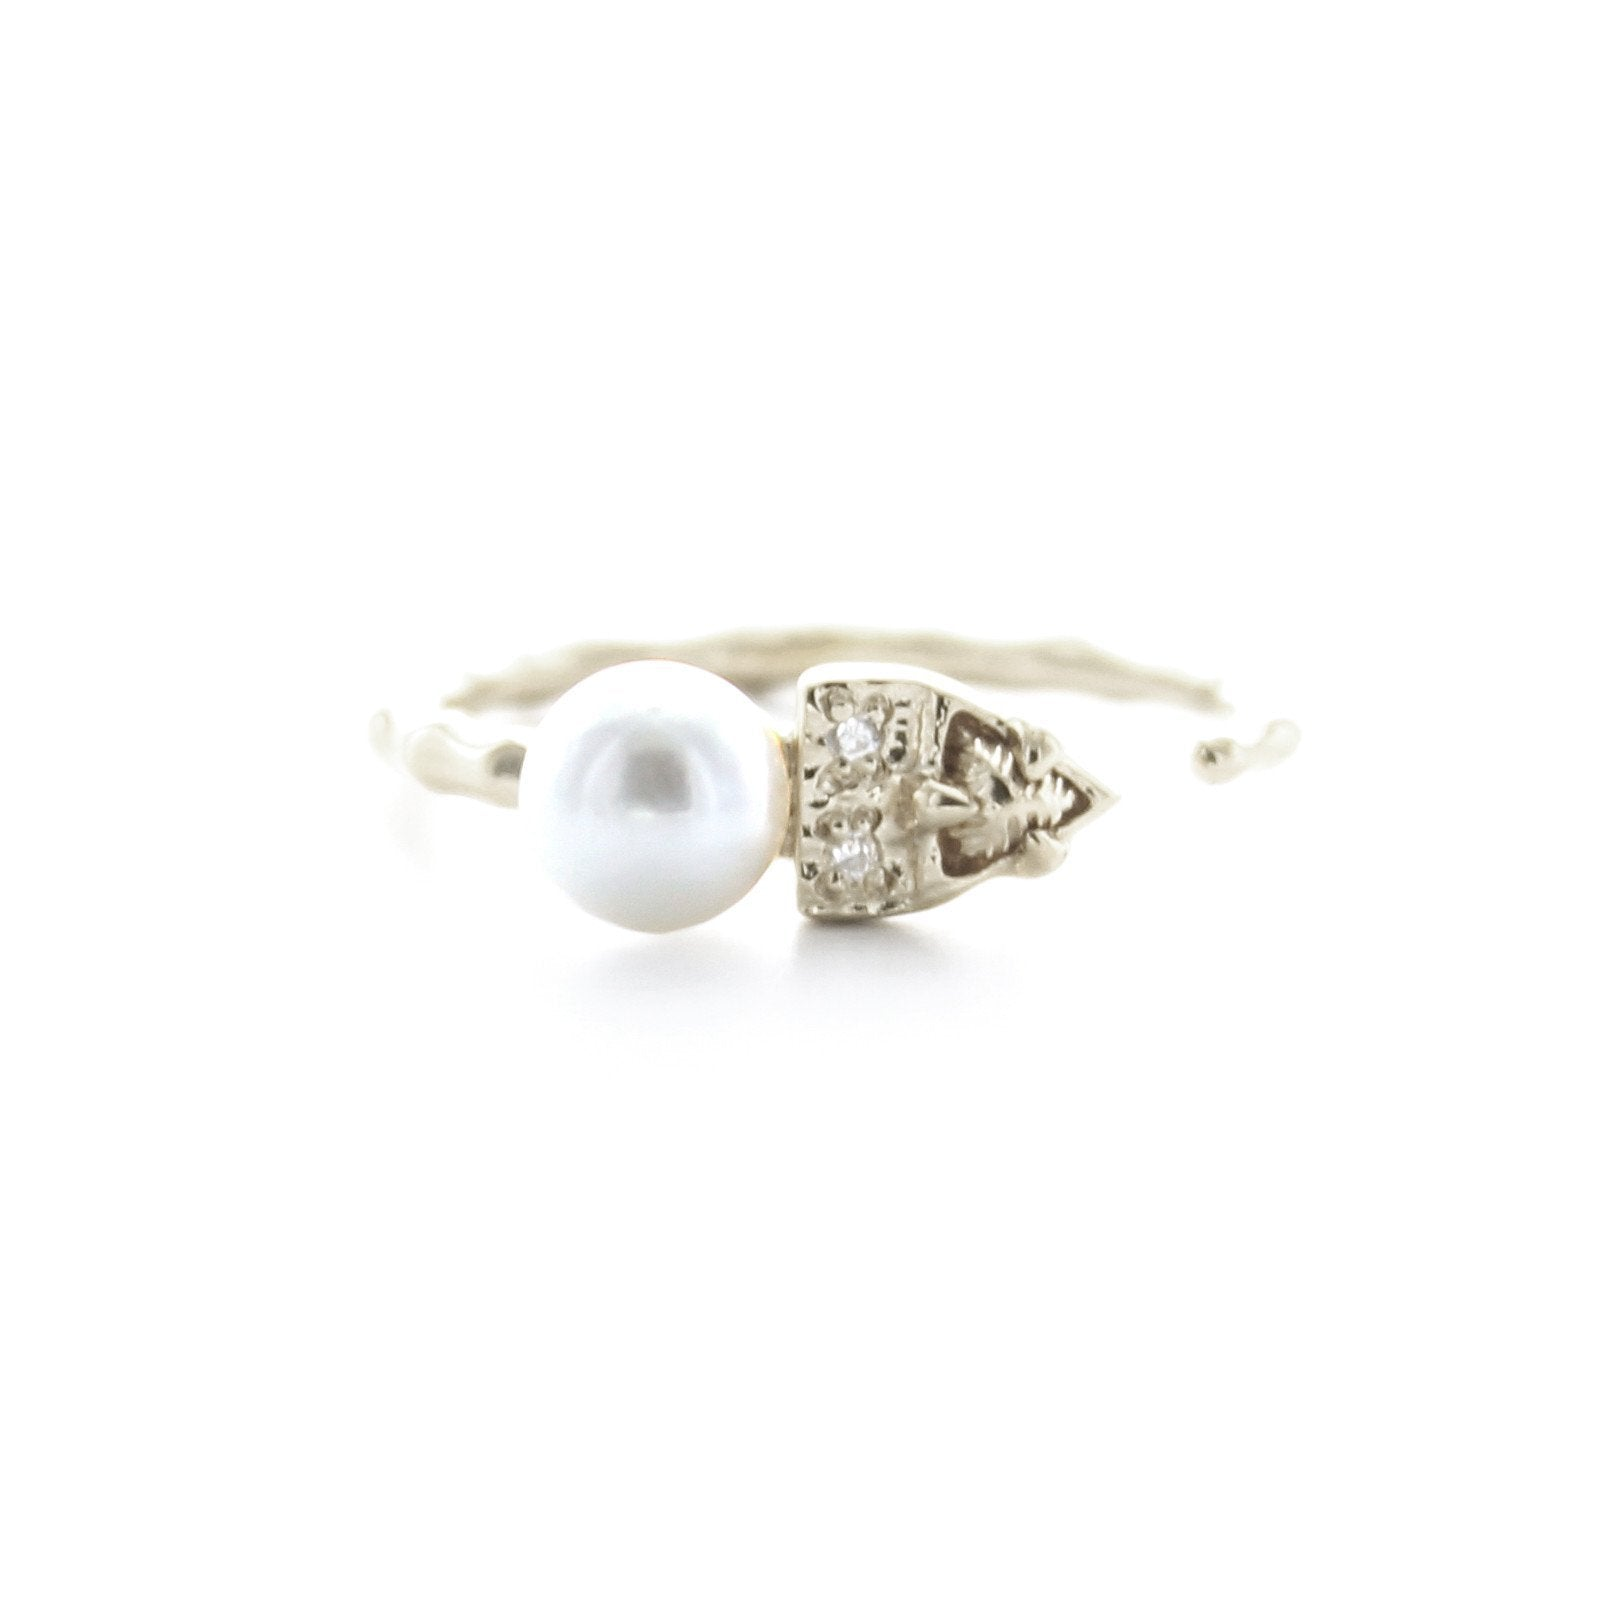 FIERCE ADJUSTABLE RING - FRESHWATER PEARL, CUBIC ZIRCONIA & SILVER - SO PRETTY CARA COTTER